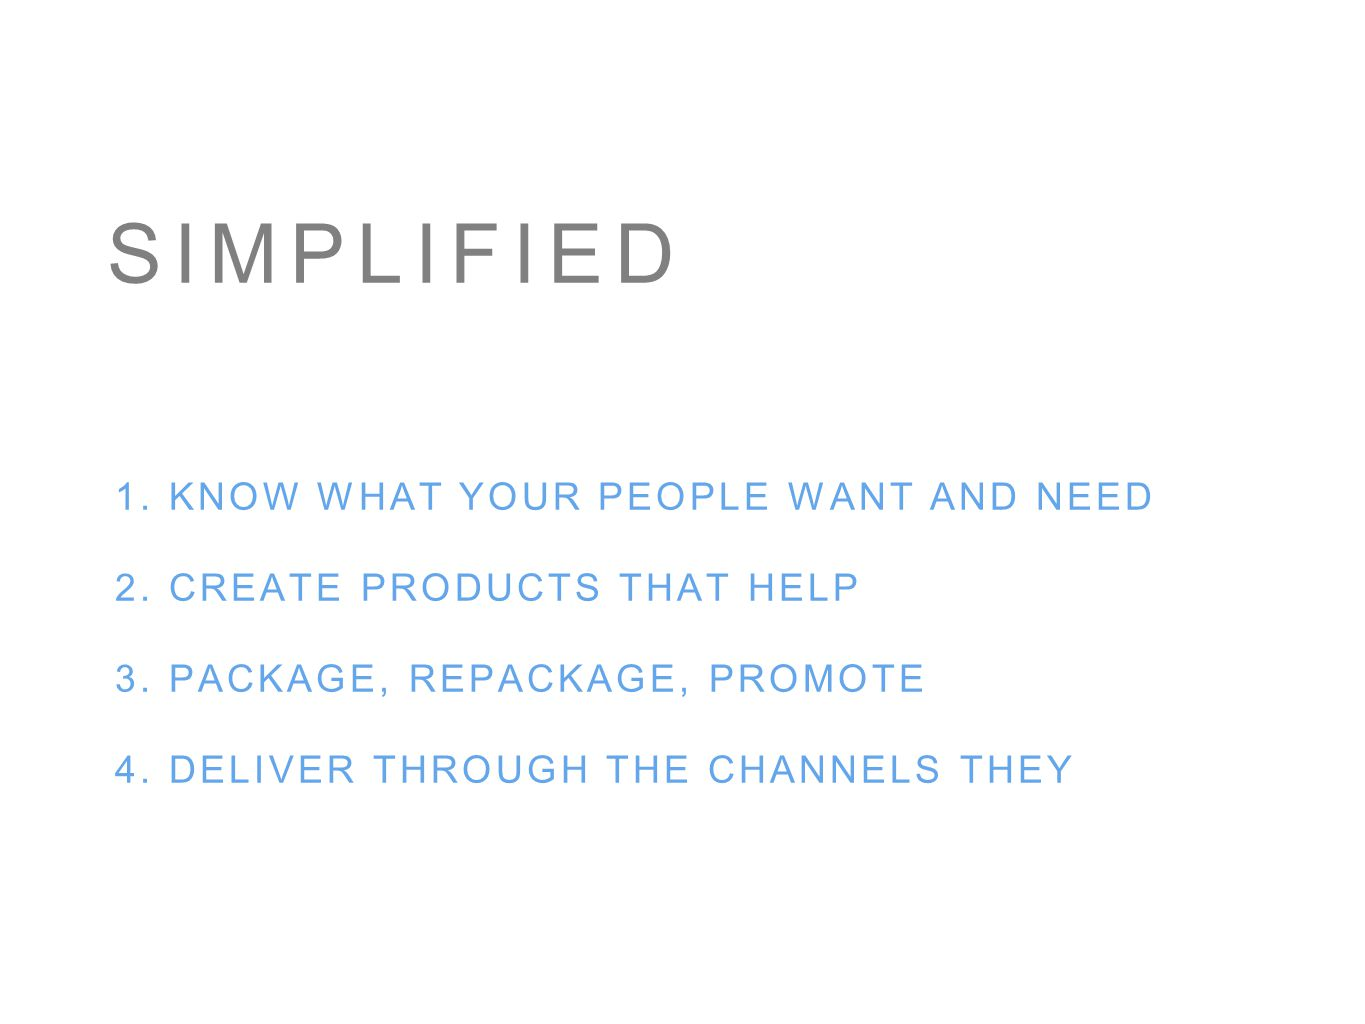 SIMPLIFIED 1. KNOW WHAT YOUR PEOPLE WANT AND NEED 2. CREATE PRODUCTS THAT HELP 3. PACKAGE, REPACKAGE, PROMOTE 4. DELIVER THROUGH THE CHANNELS THEY